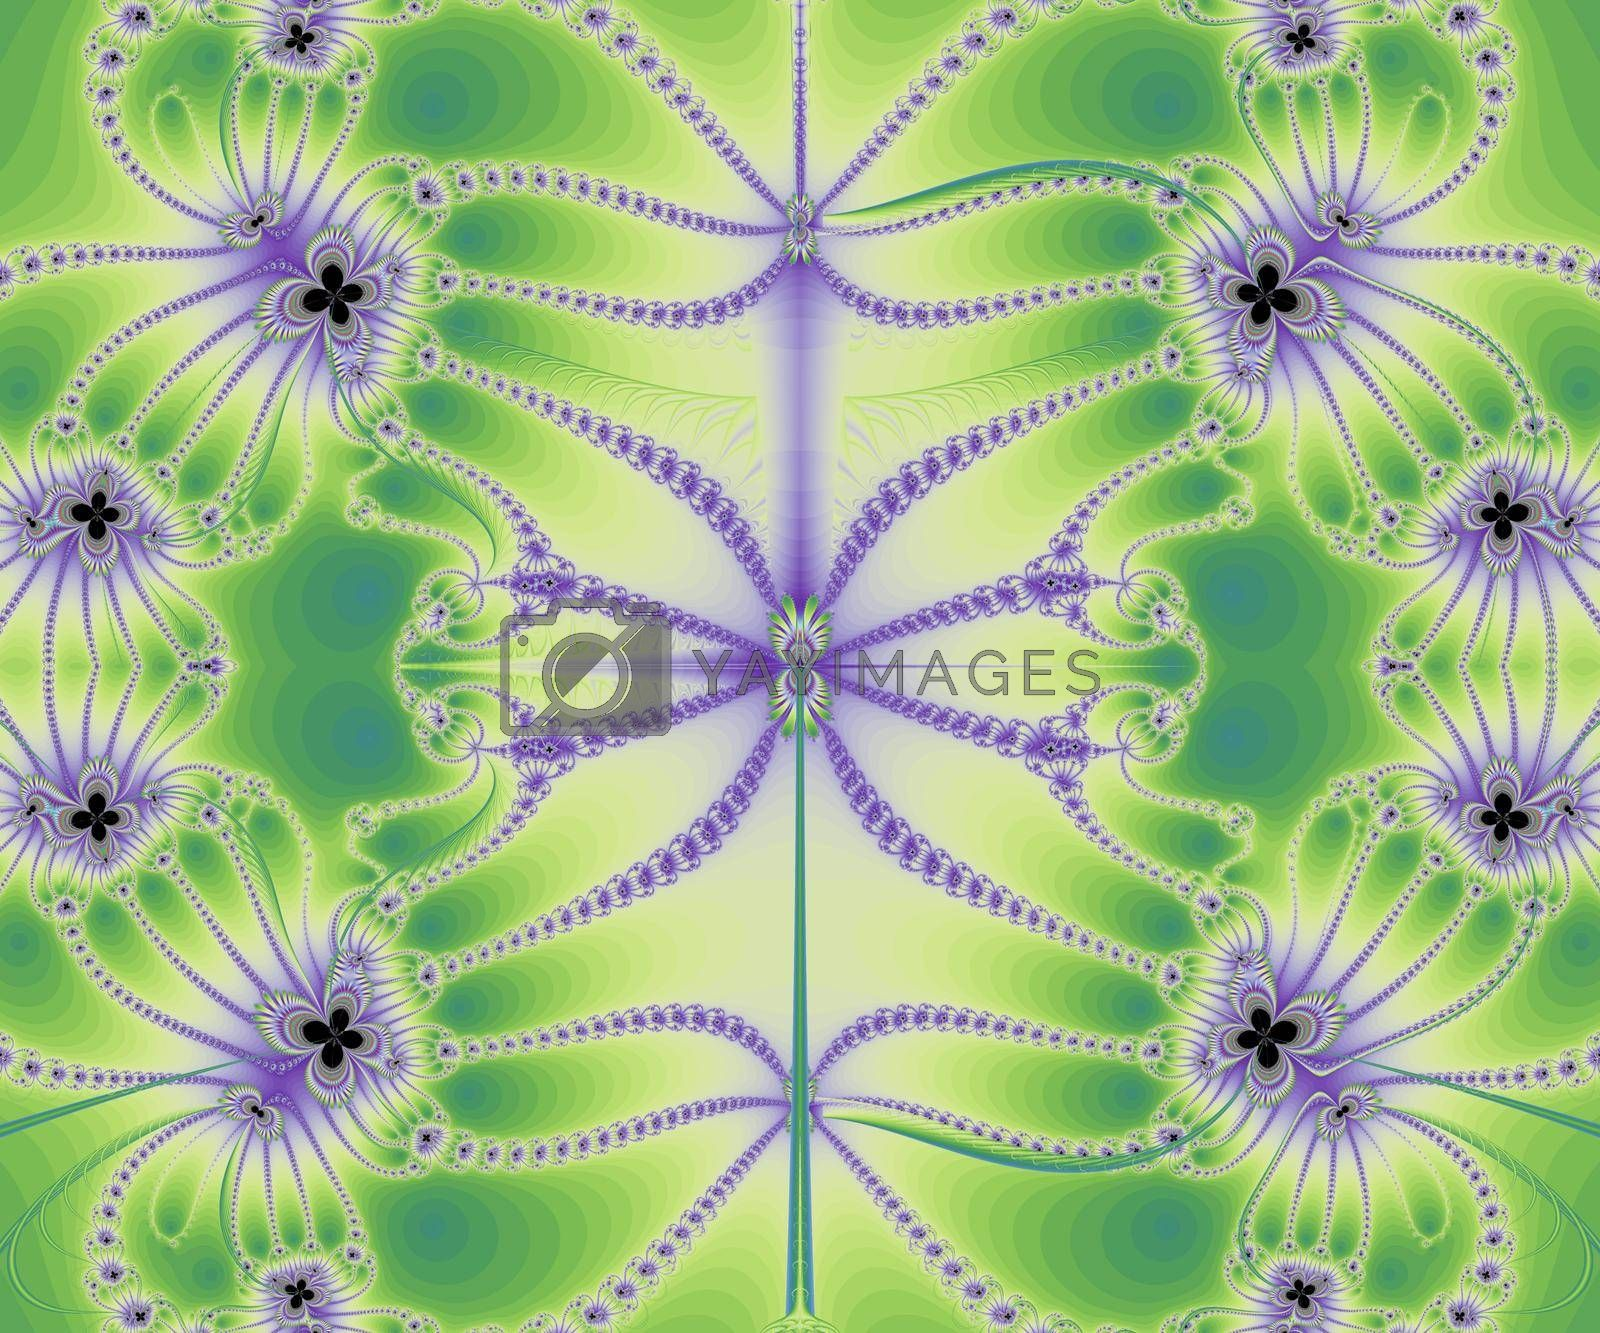 Fractal image on a light background colored lines, intricately woven in a beautiful pattern .